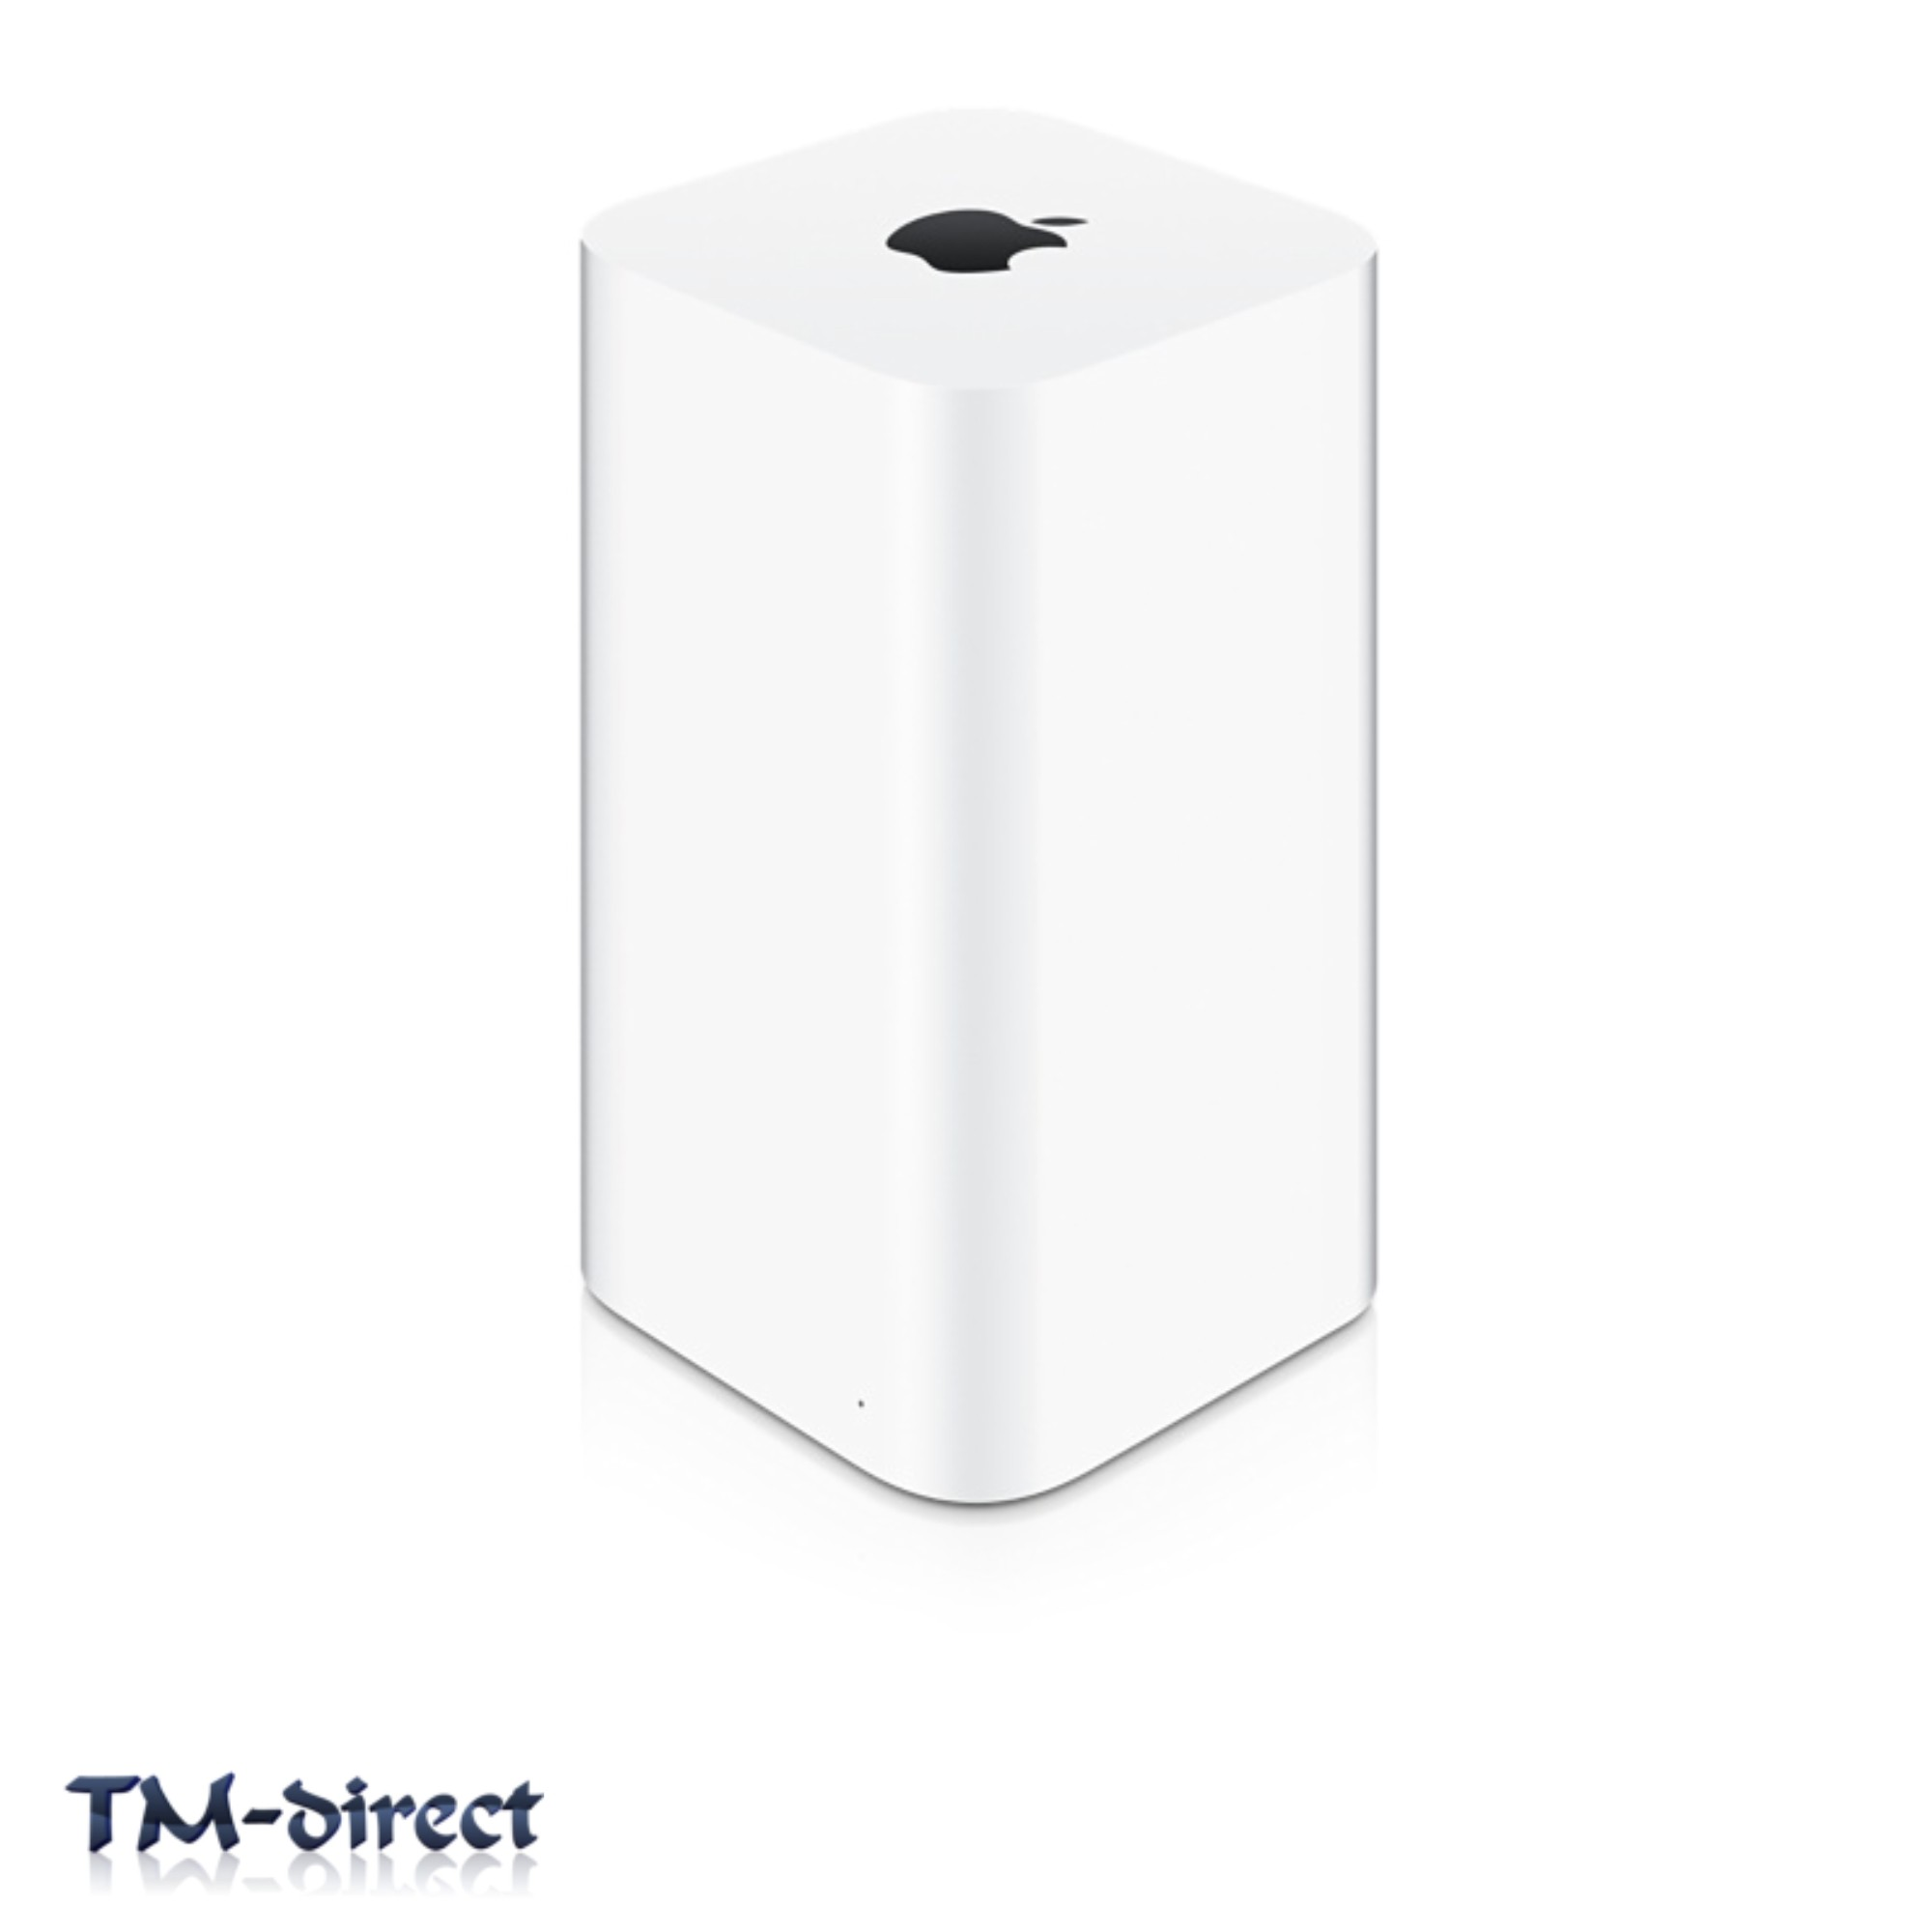 Apple AirPort Time Capsule 3TB NAS Server Wi Fi Base Station Hard DriveApple AirPort Time Capsule 3TB NAS Server Wi Fi Base Sta